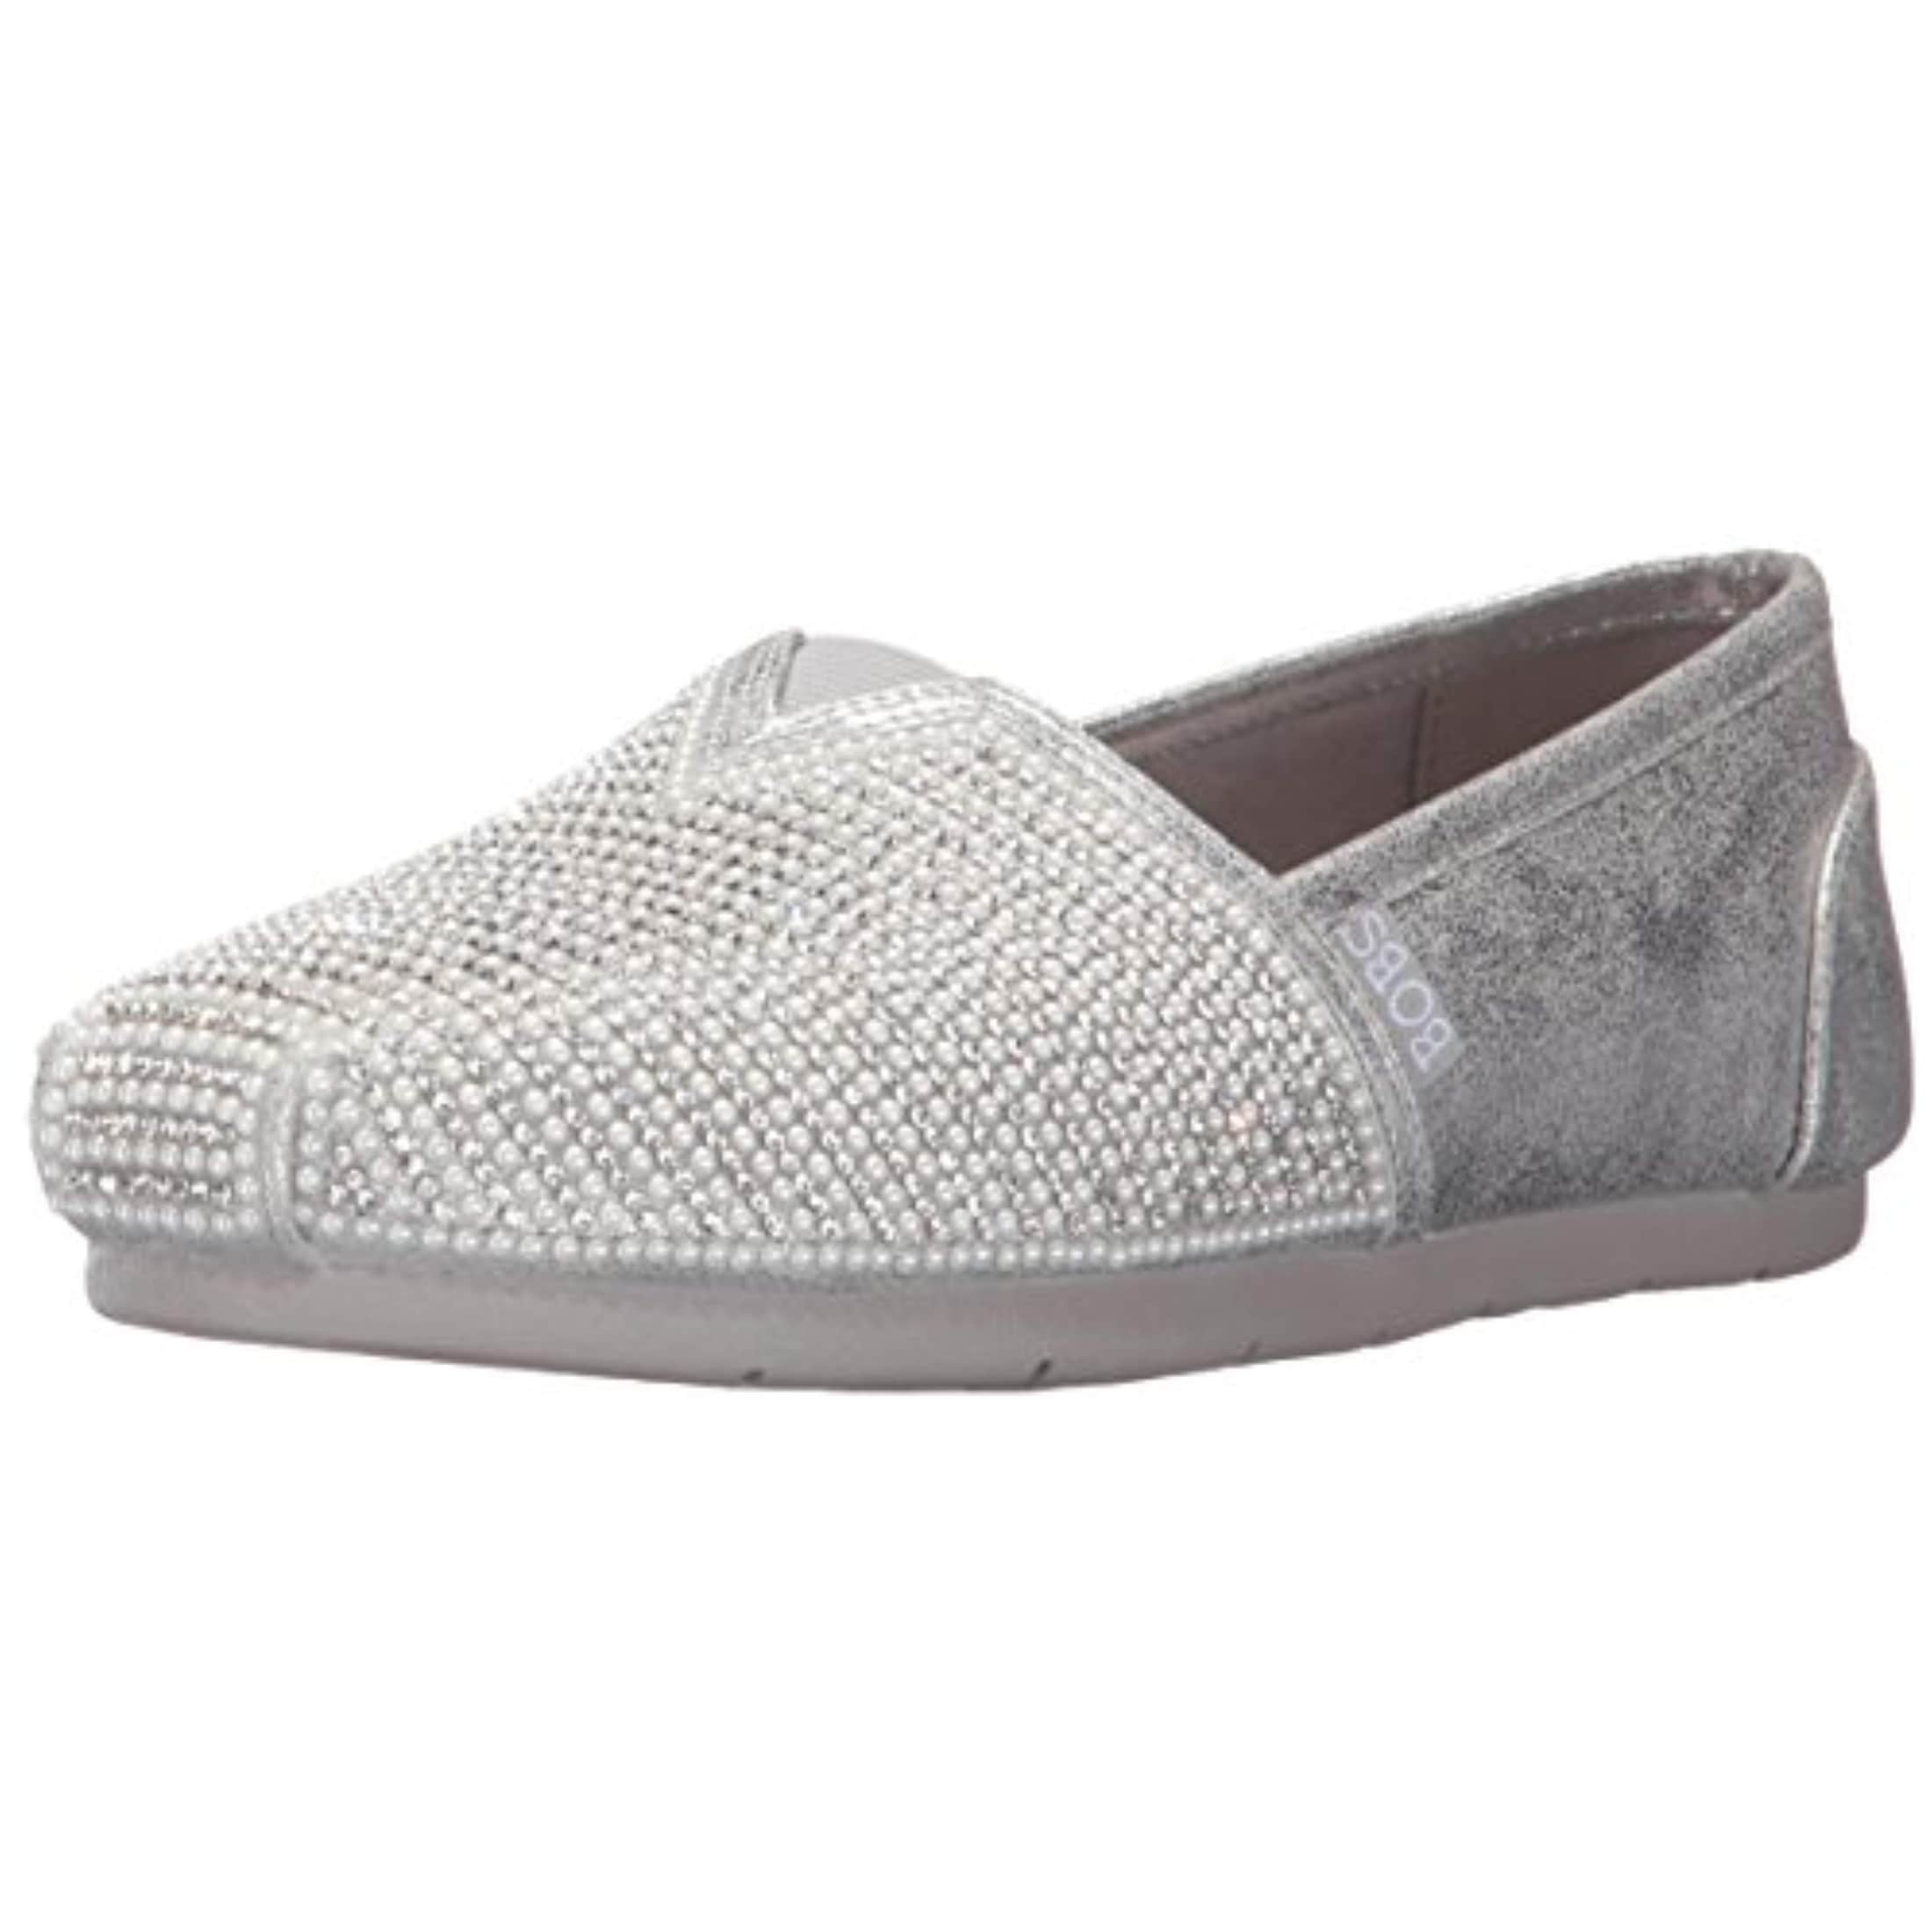 Luxe Bobs-Big Dreamer Flat, Silver